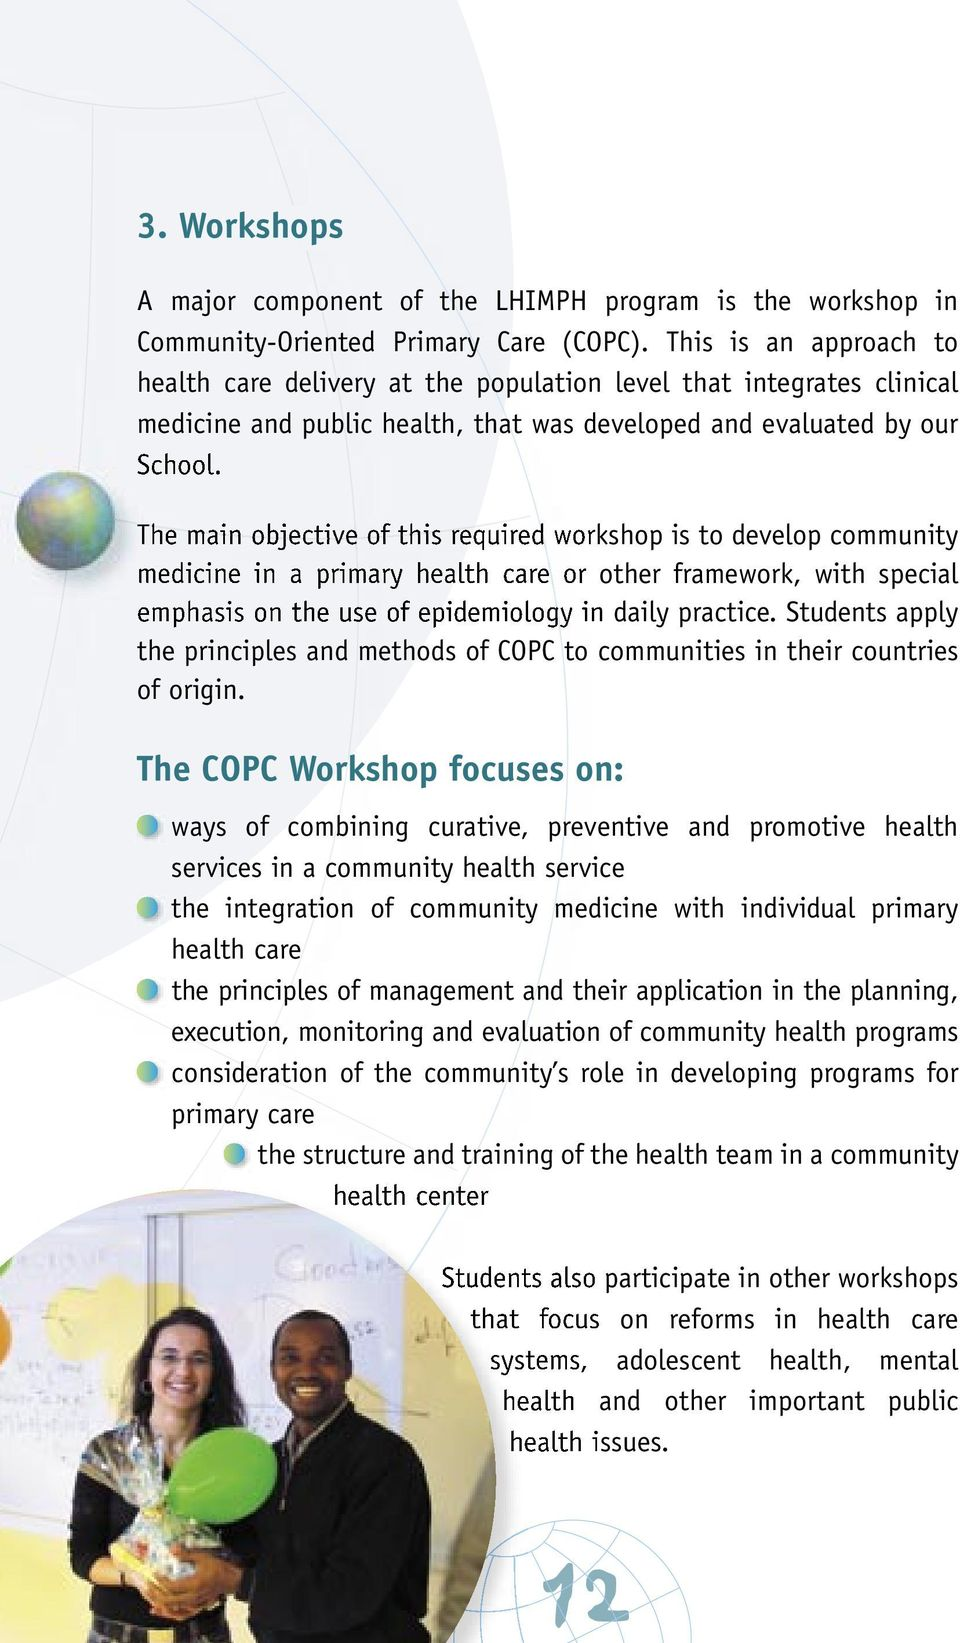 The main objective of this required workshop is to develop community medicine in a primary health care or other framework, with special emphasis on the use of epidemiology in daily practice.